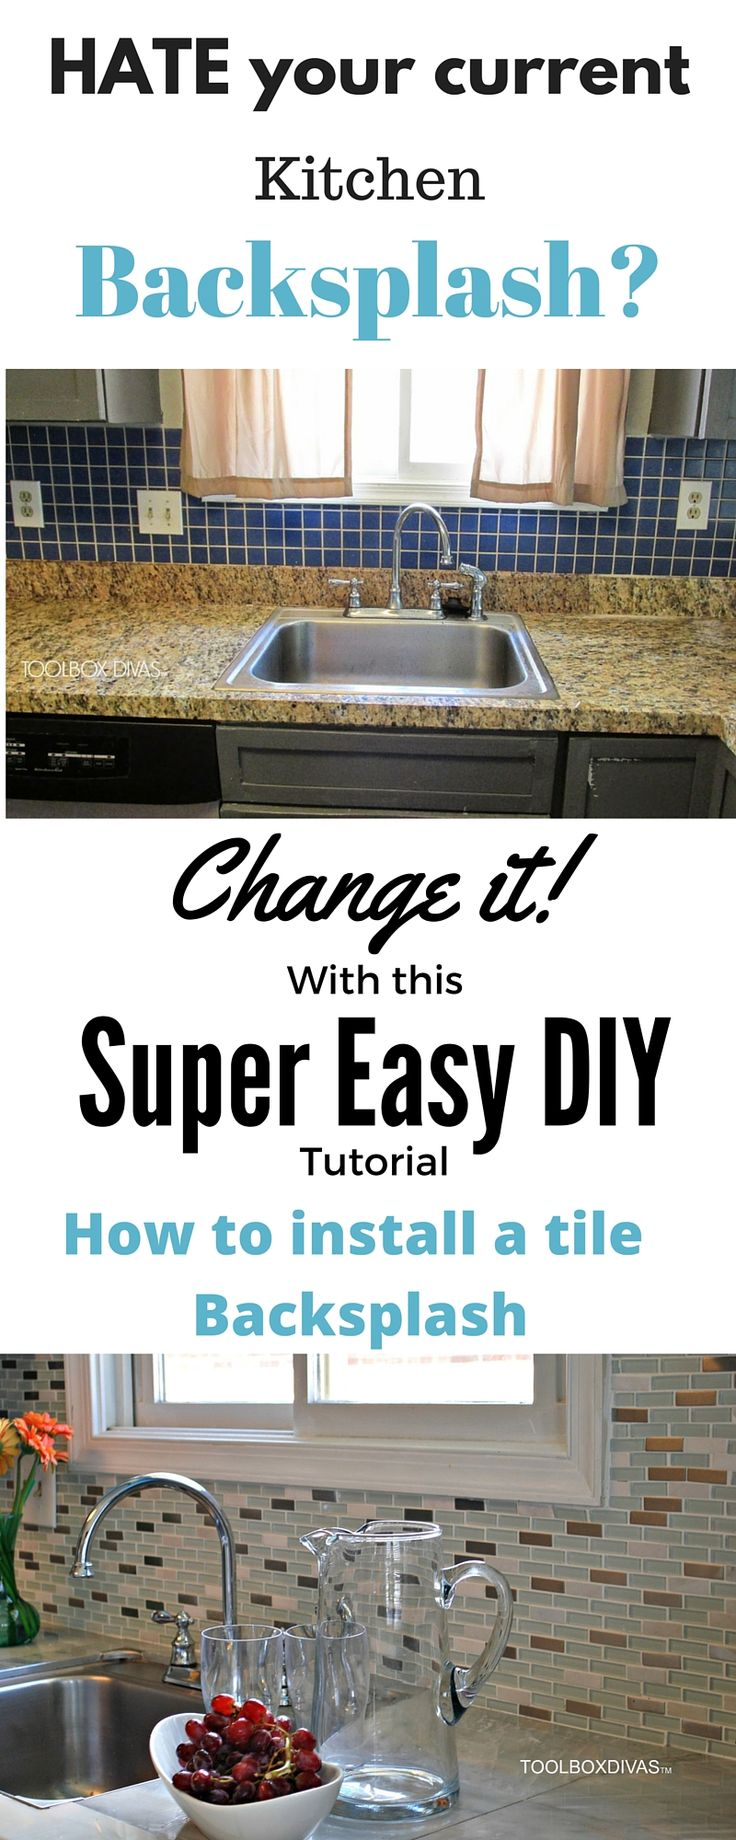 How To Install A Tile Backsplash Remove The Old Out Dated